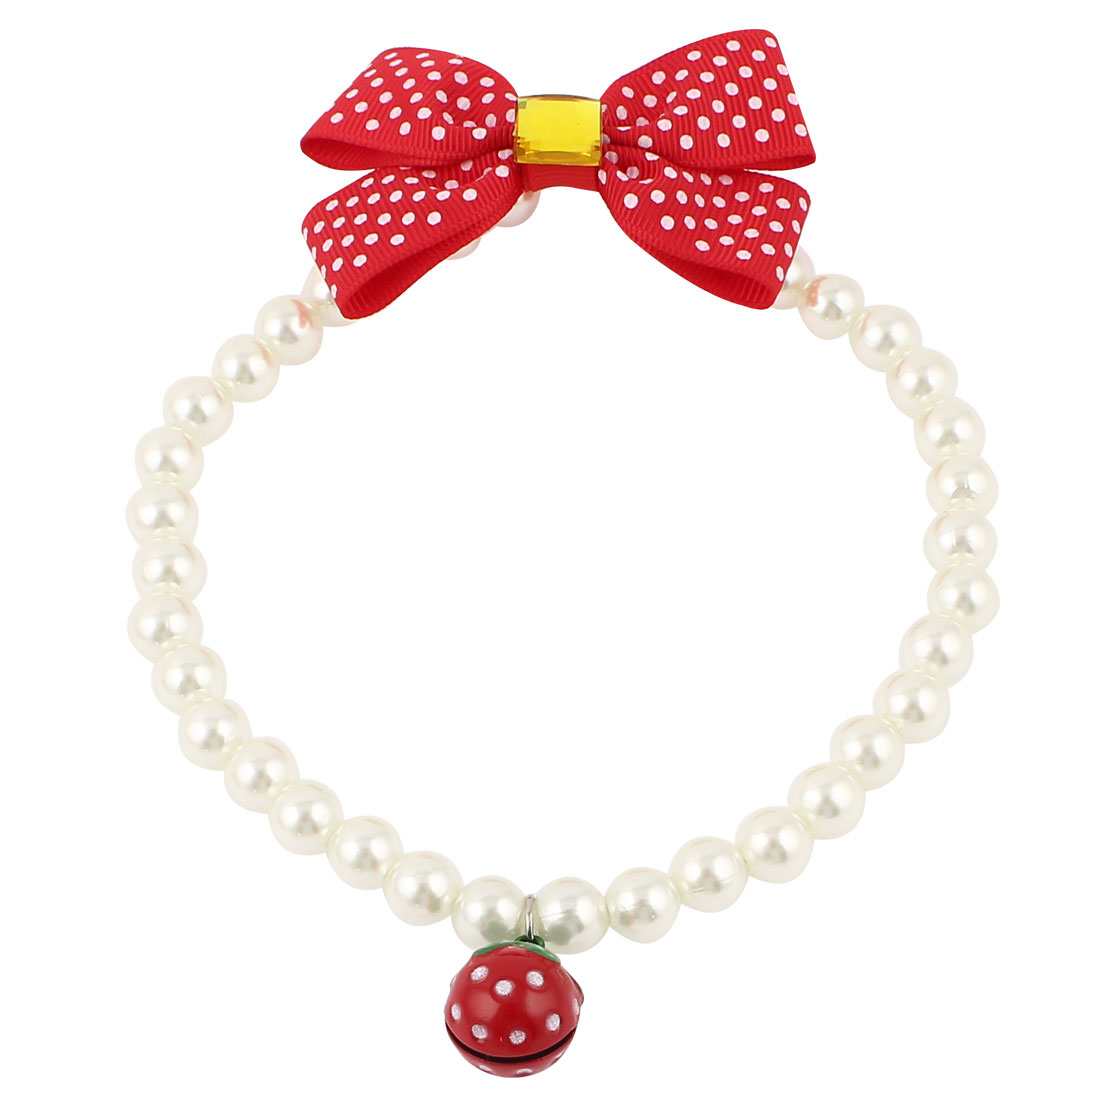 Metal Bell Pendant Bowtie Accent Pet Dog Plastic Beads Pearls Collar Necklace White Red L